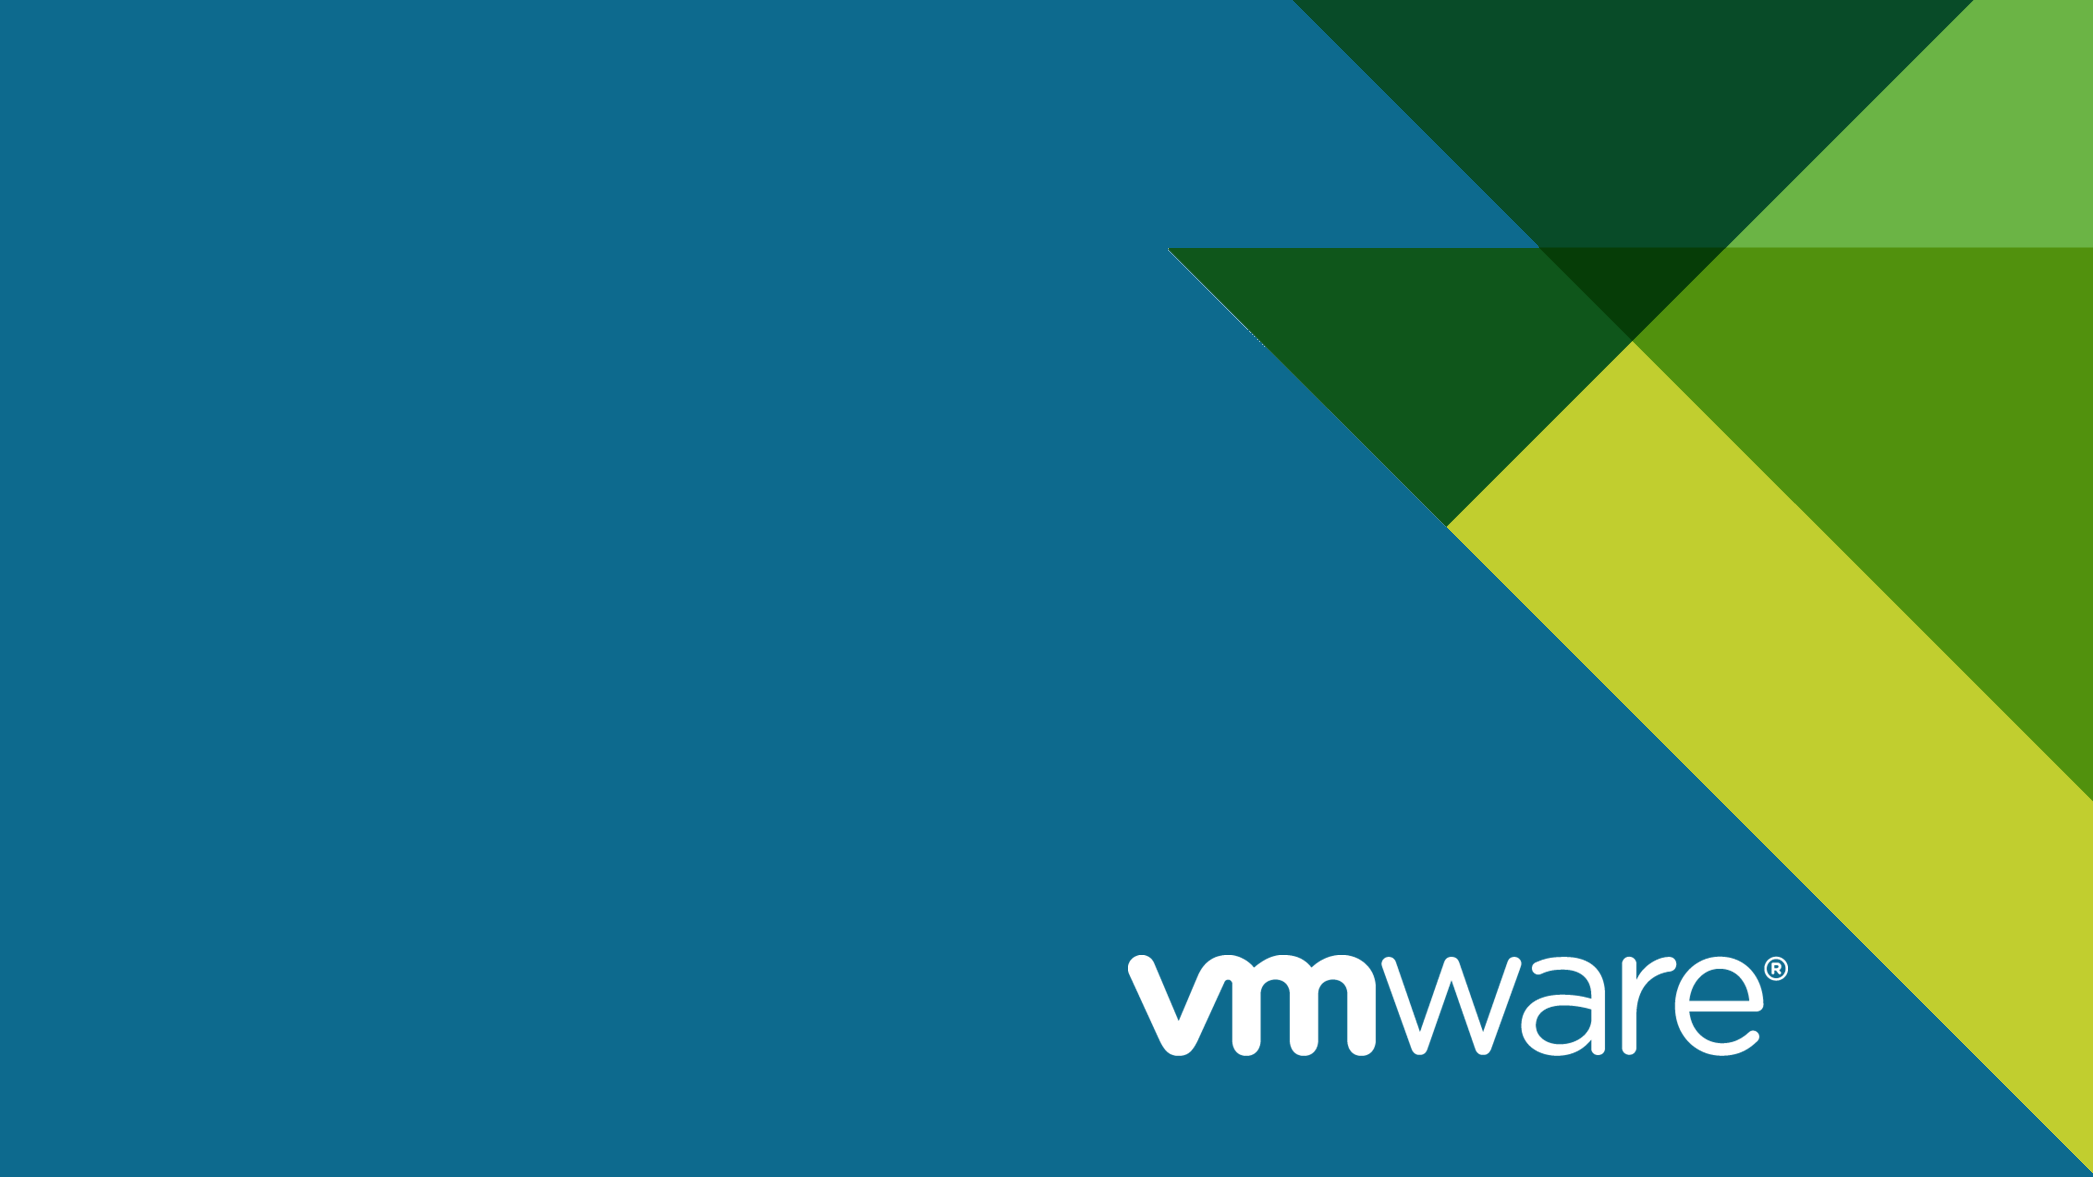 17 Best ideas about Vmware Esx on Pinterest | Advantages of cloud ...